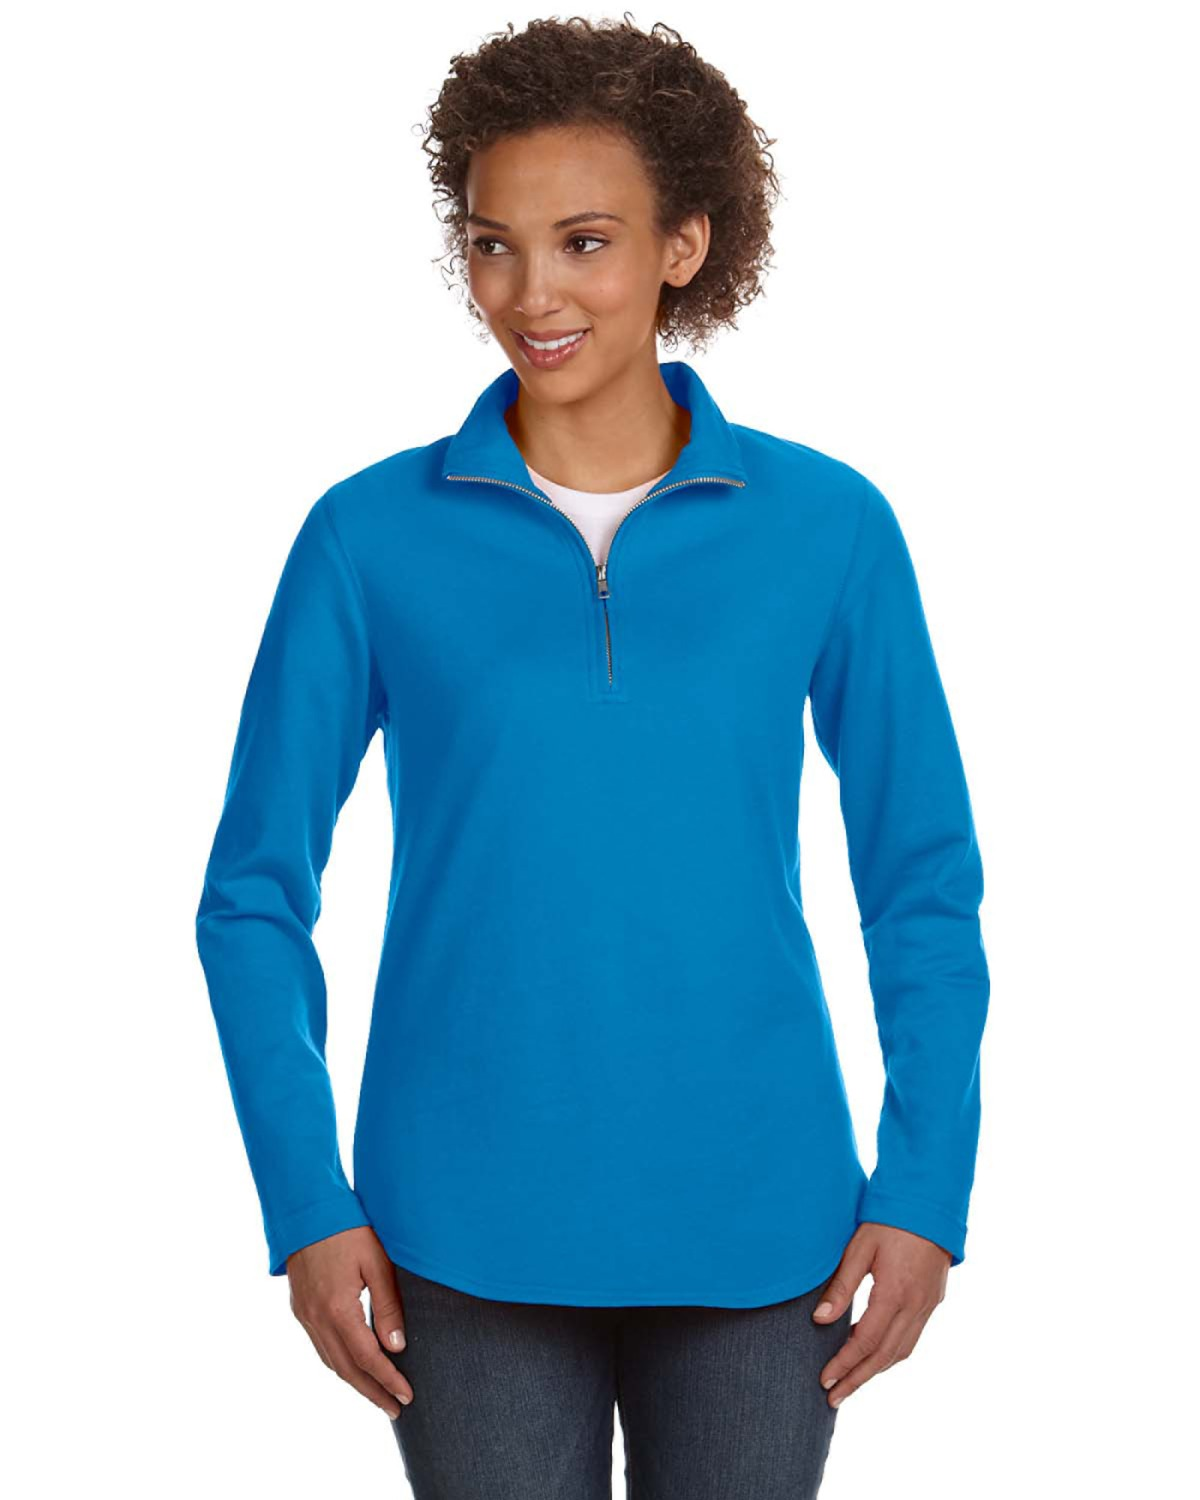 LAT Ladies' French Terry Quarter-Zip Pullover - 3764